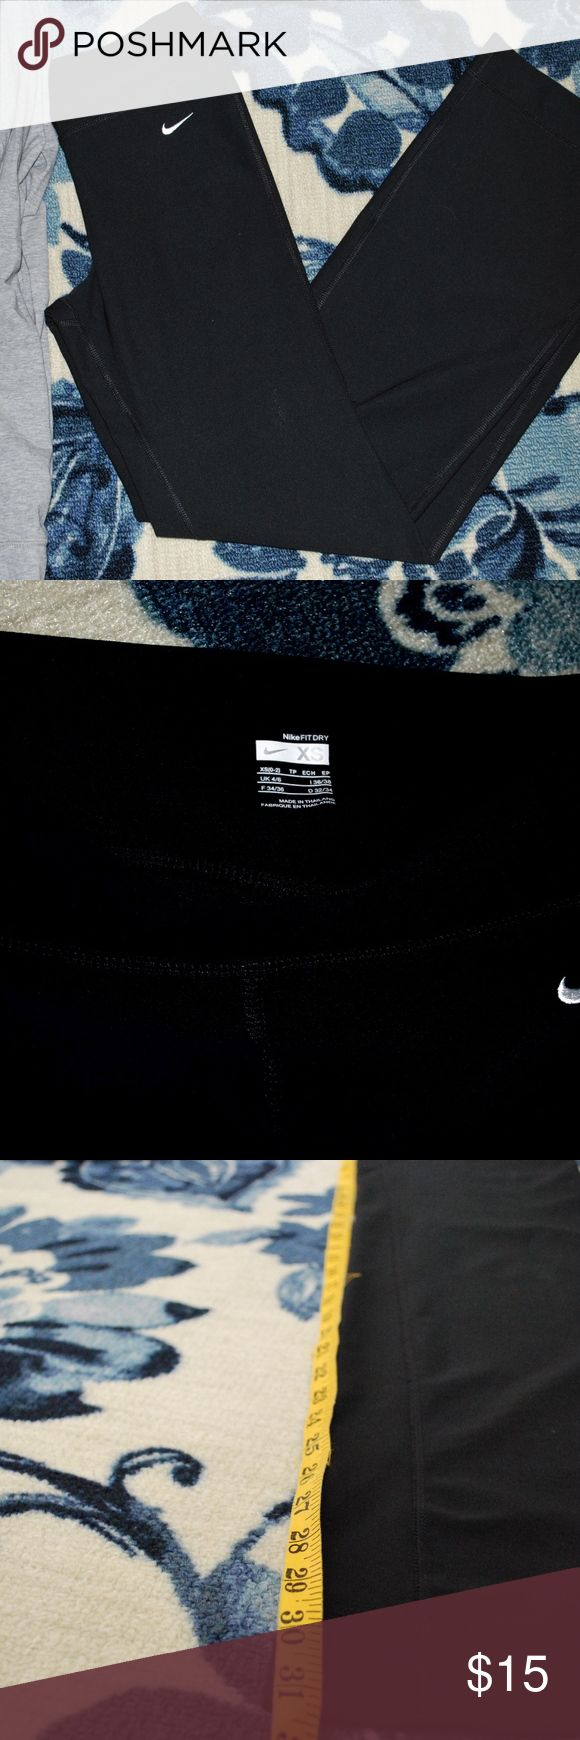 Nike yoga pants Nike yoga pants in great condition! Only worn one or two times! Nike Pants Boot Cut & Flare